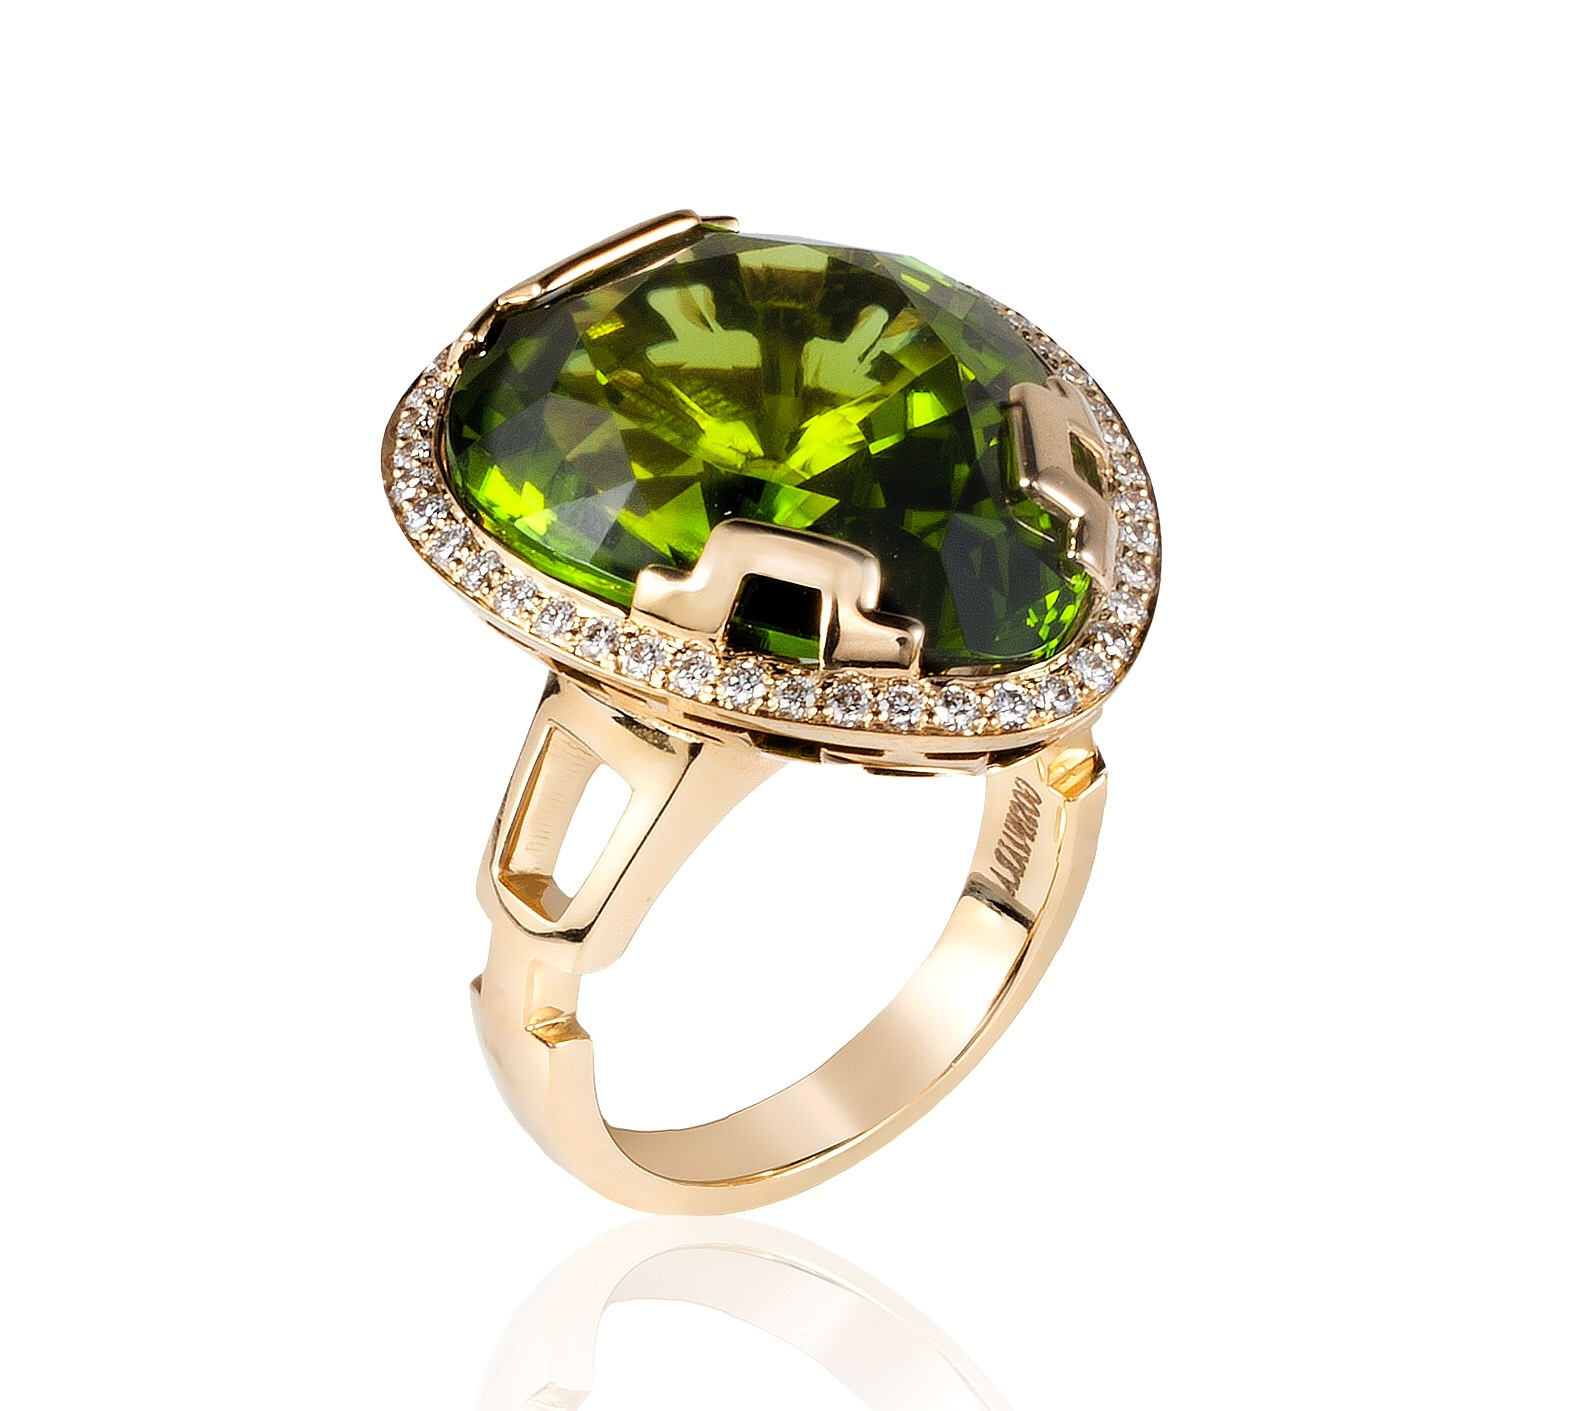 Goshwara G-One peridot ring | JCK On Your Market